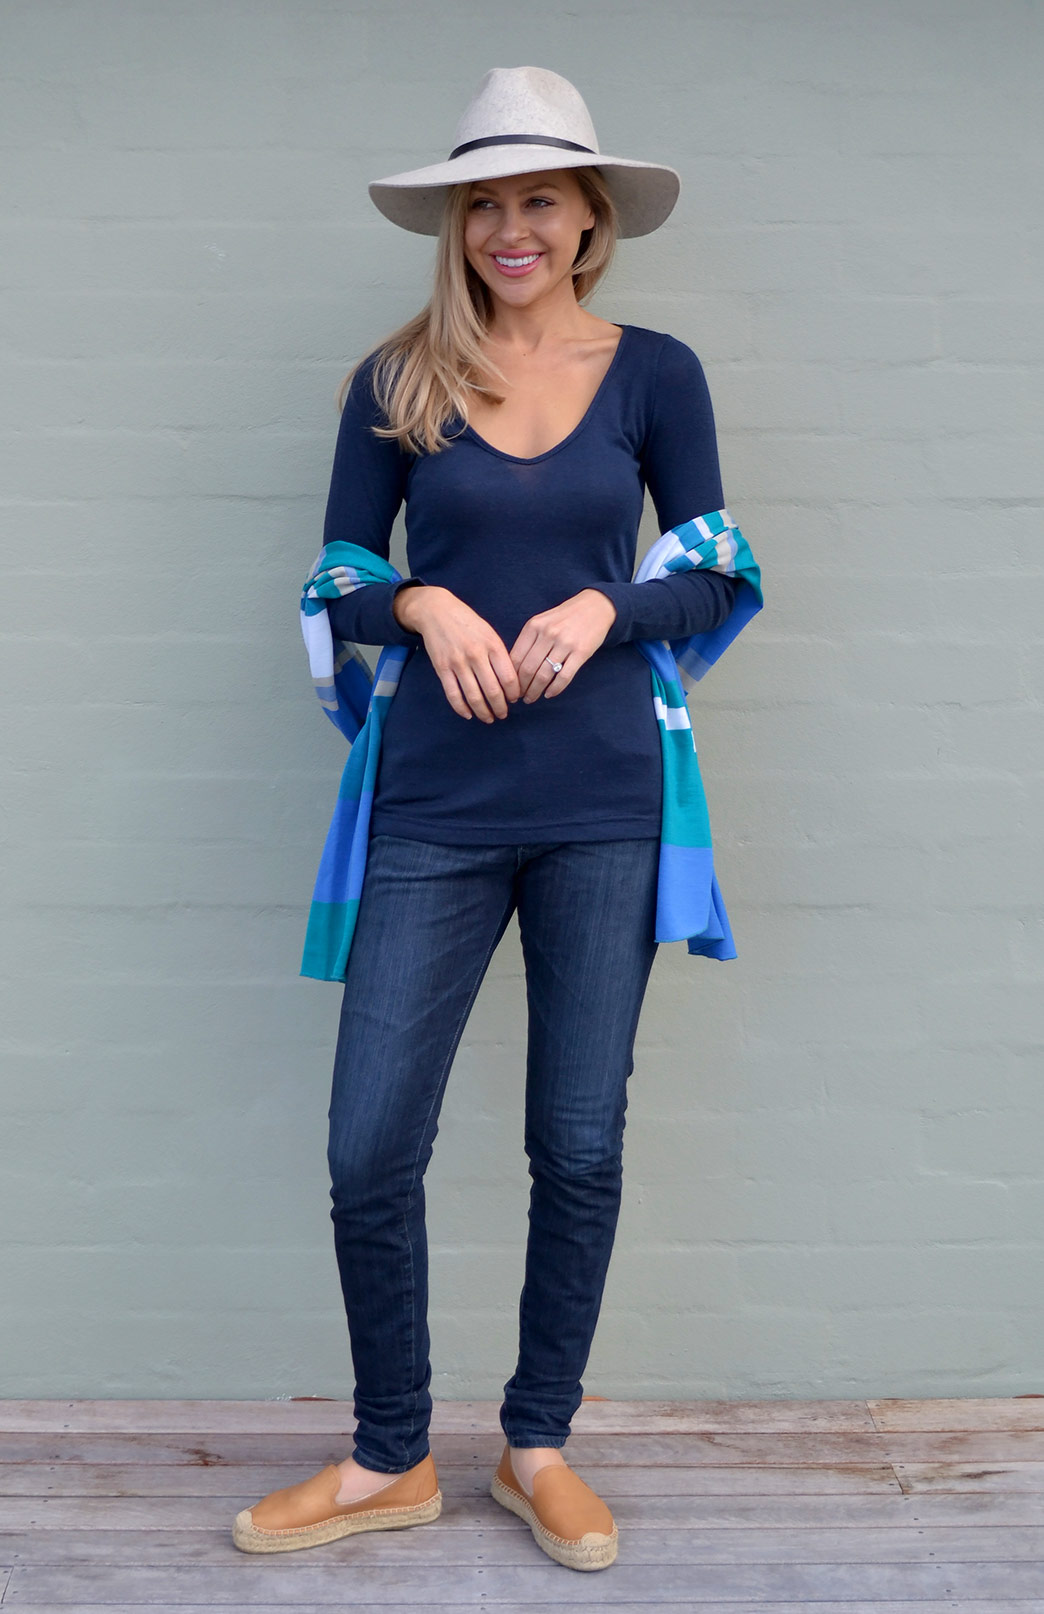 V-Neck Top - Women's Ink Blue Long Sleeved V-Neck Top - Smitten Merino Tasmania Australia